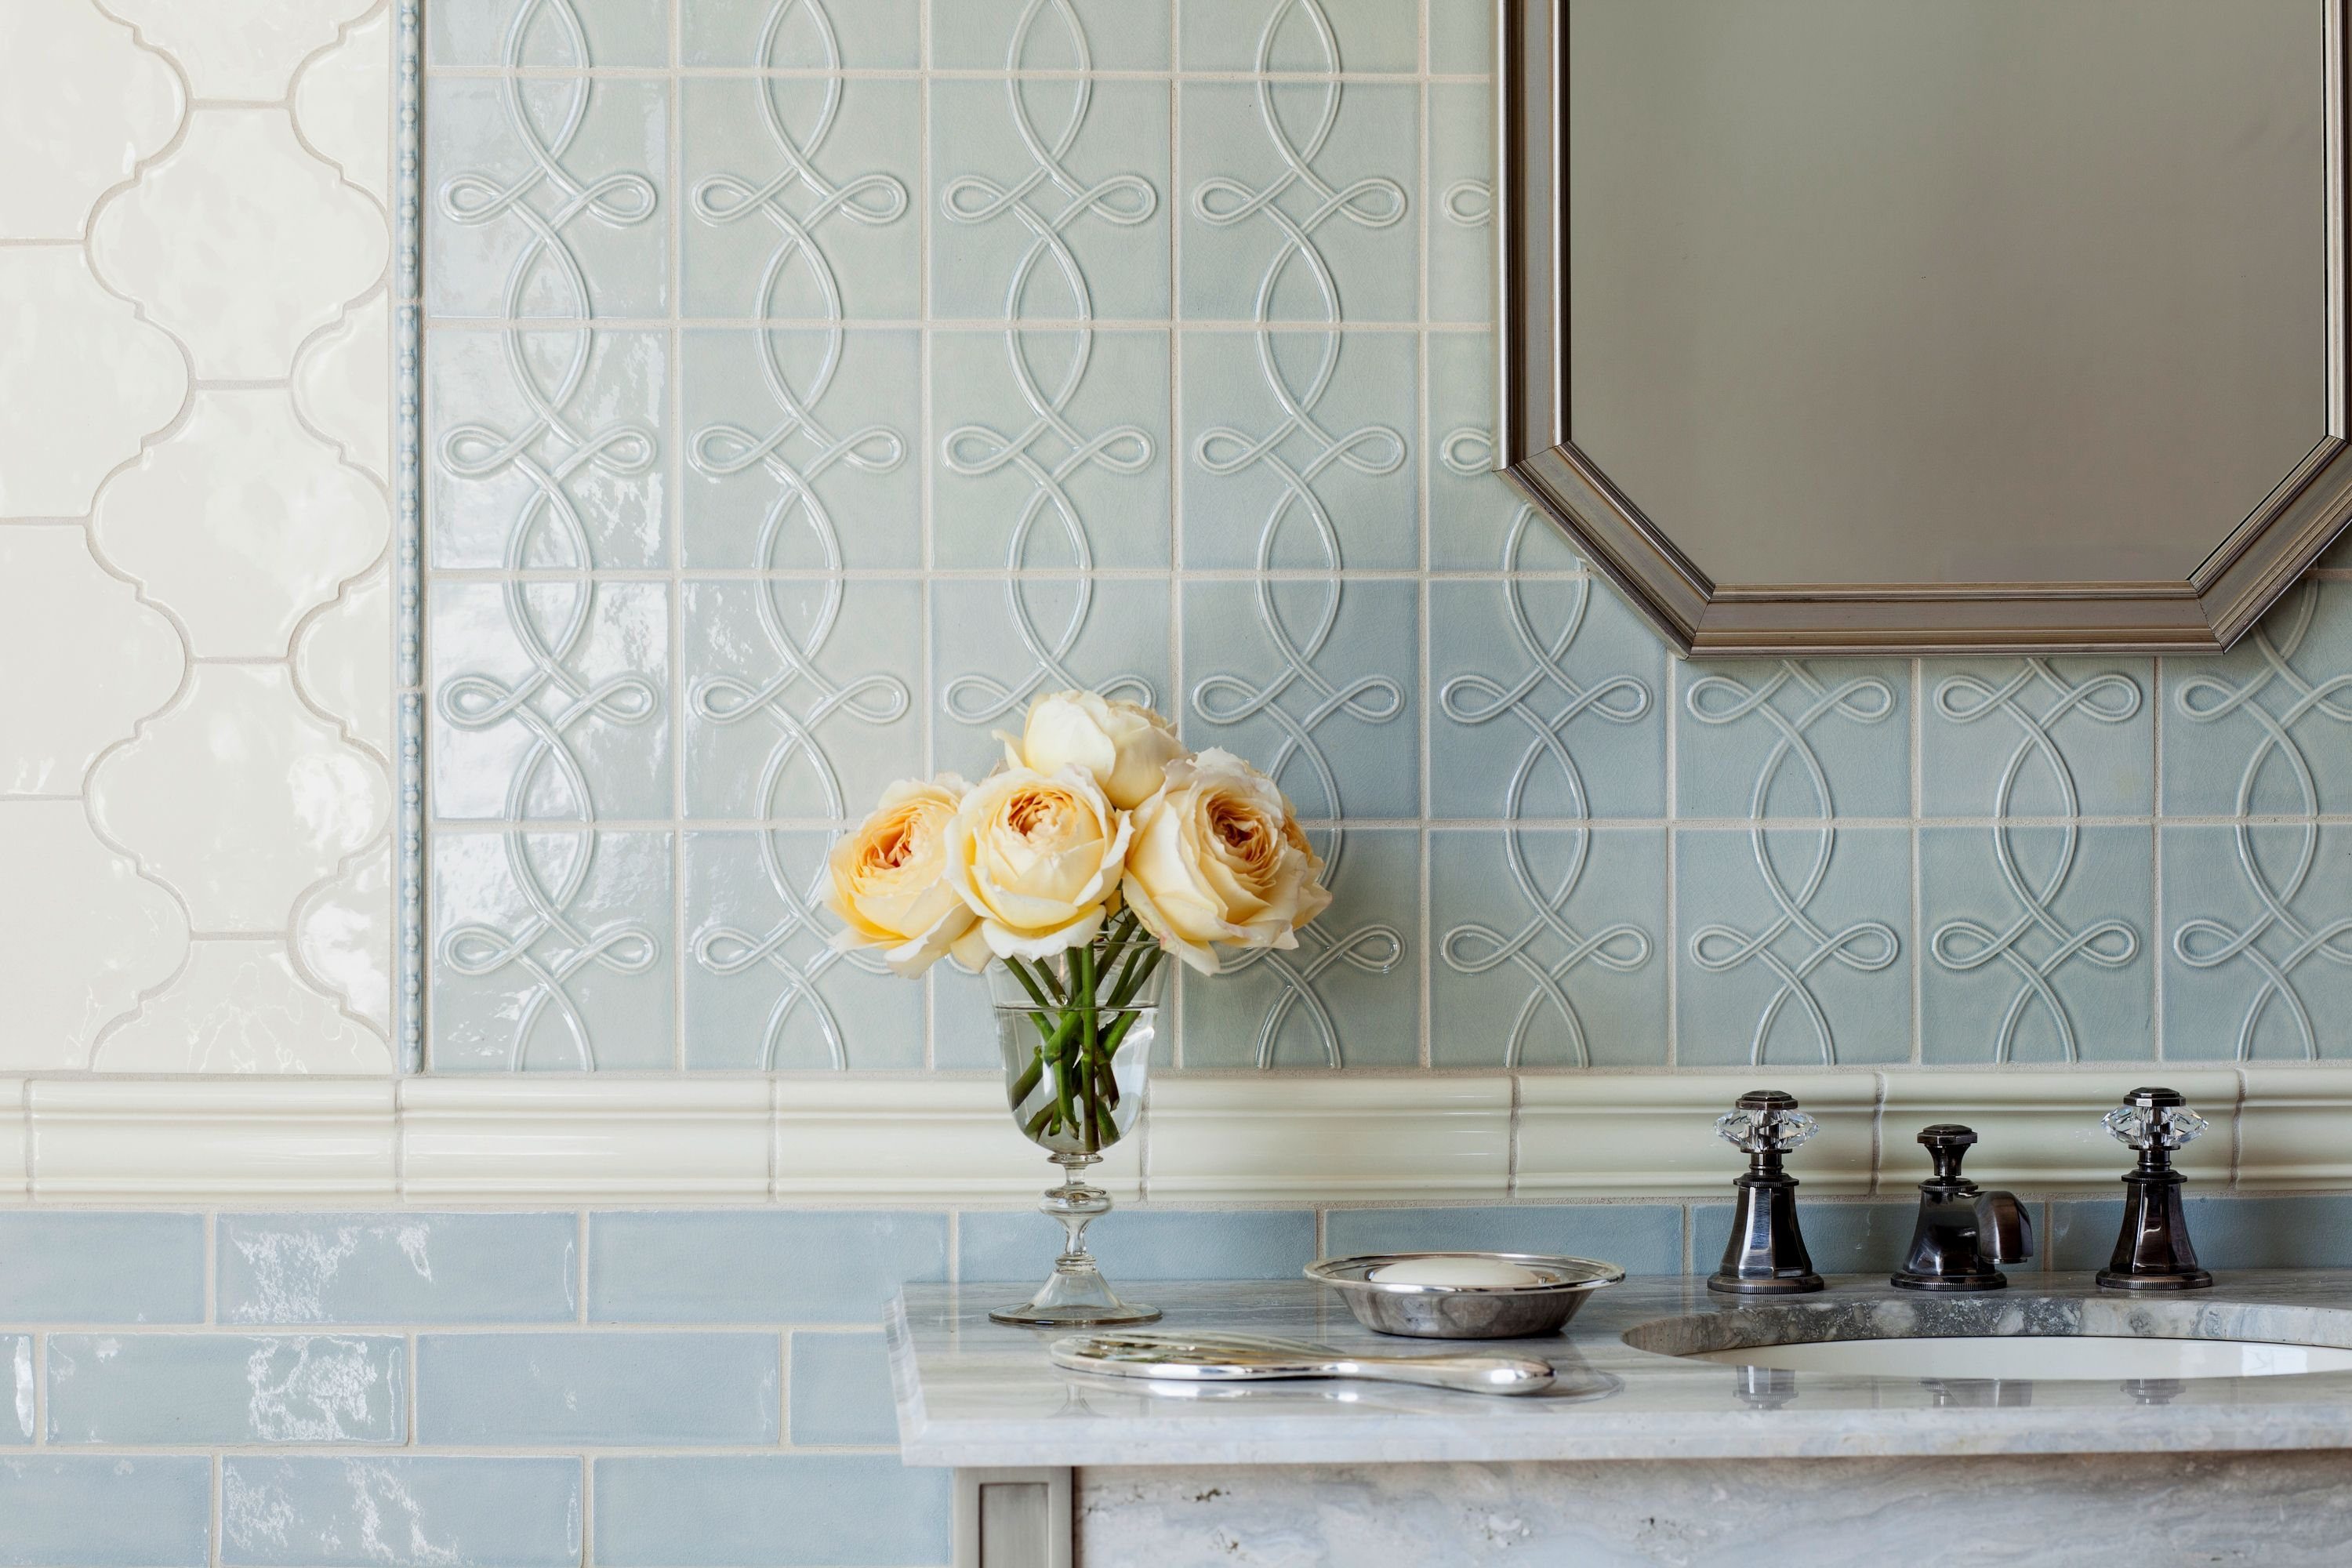 Tuilleries collection from wz loire blue and pastis walker love the tile combos dailygadgetfo Gallery